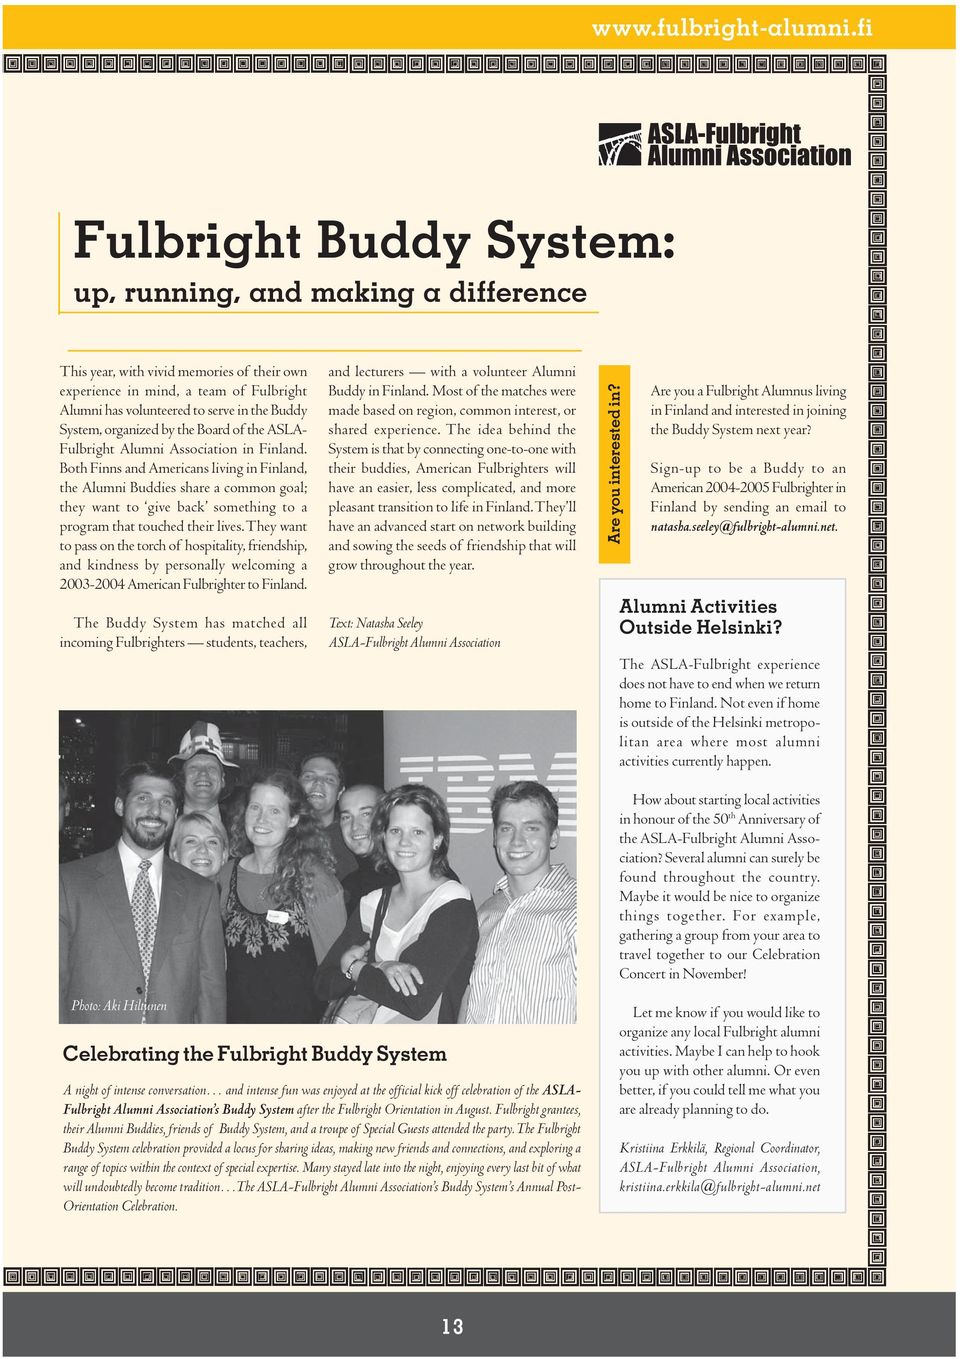 fi Fulbright Buddy System: up, running, and making a difference This year, with vivid memories of their own experience in mind, a team of Fulbright Alumni has volunteered to serve in the Buddy